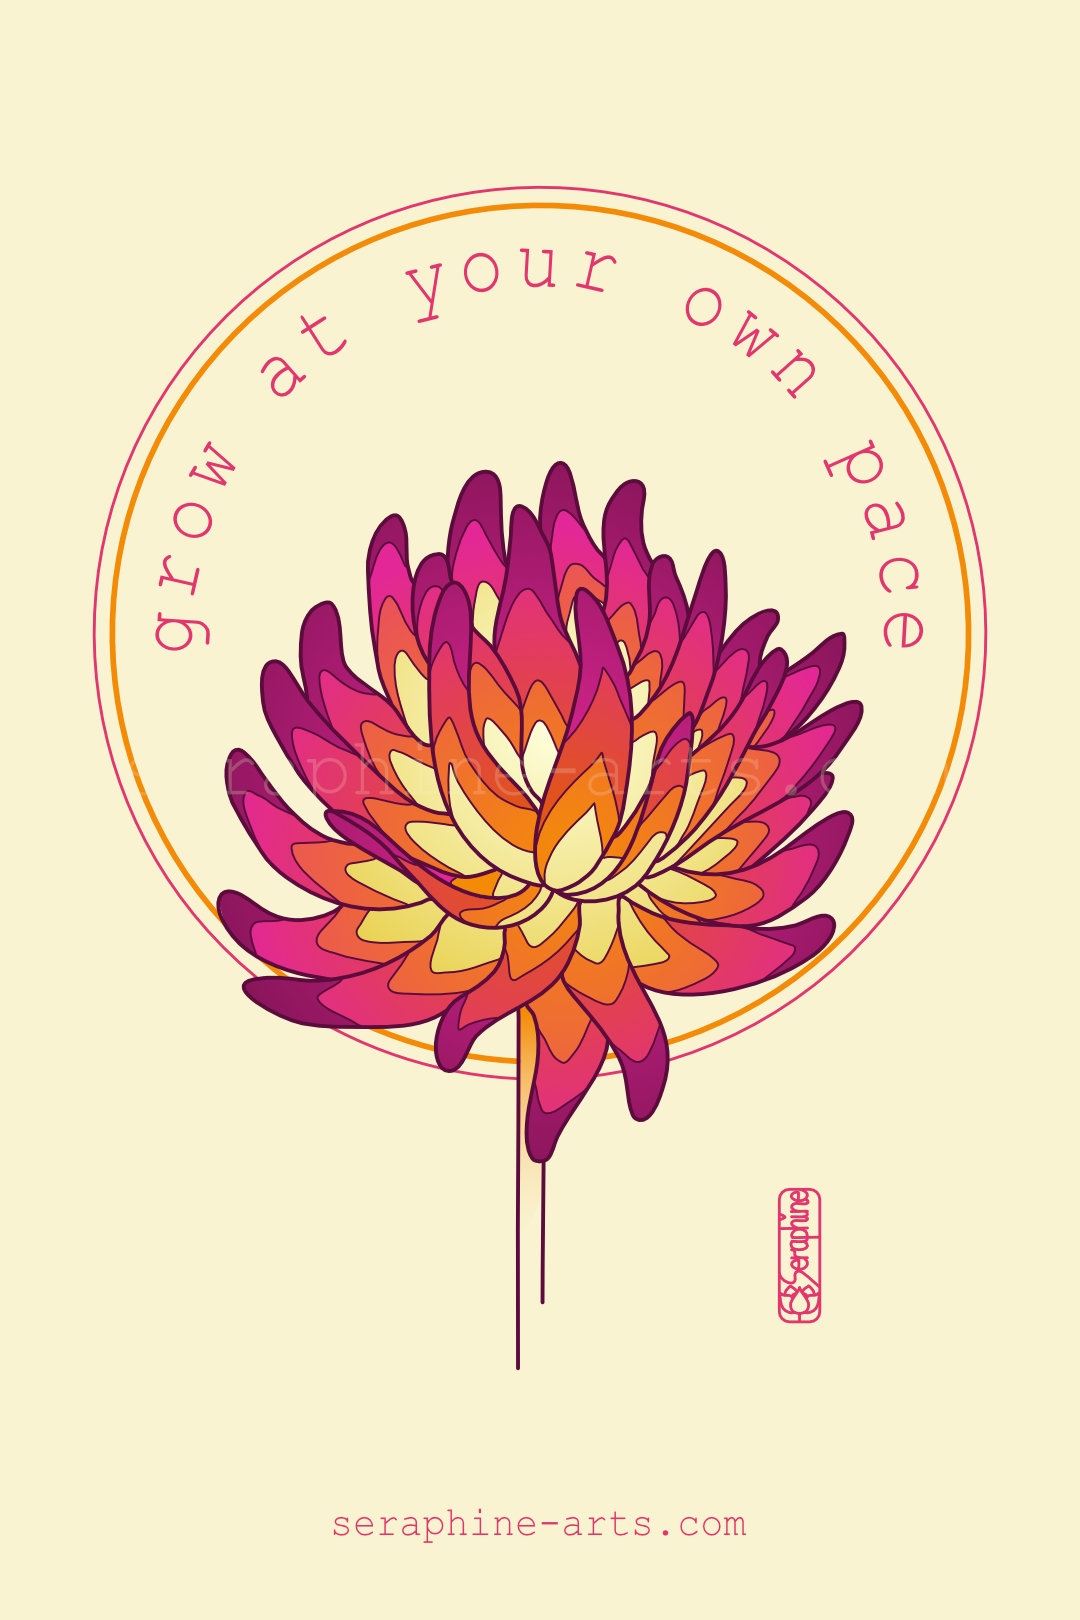 images/chrysanthemum-flower-quote.jpg